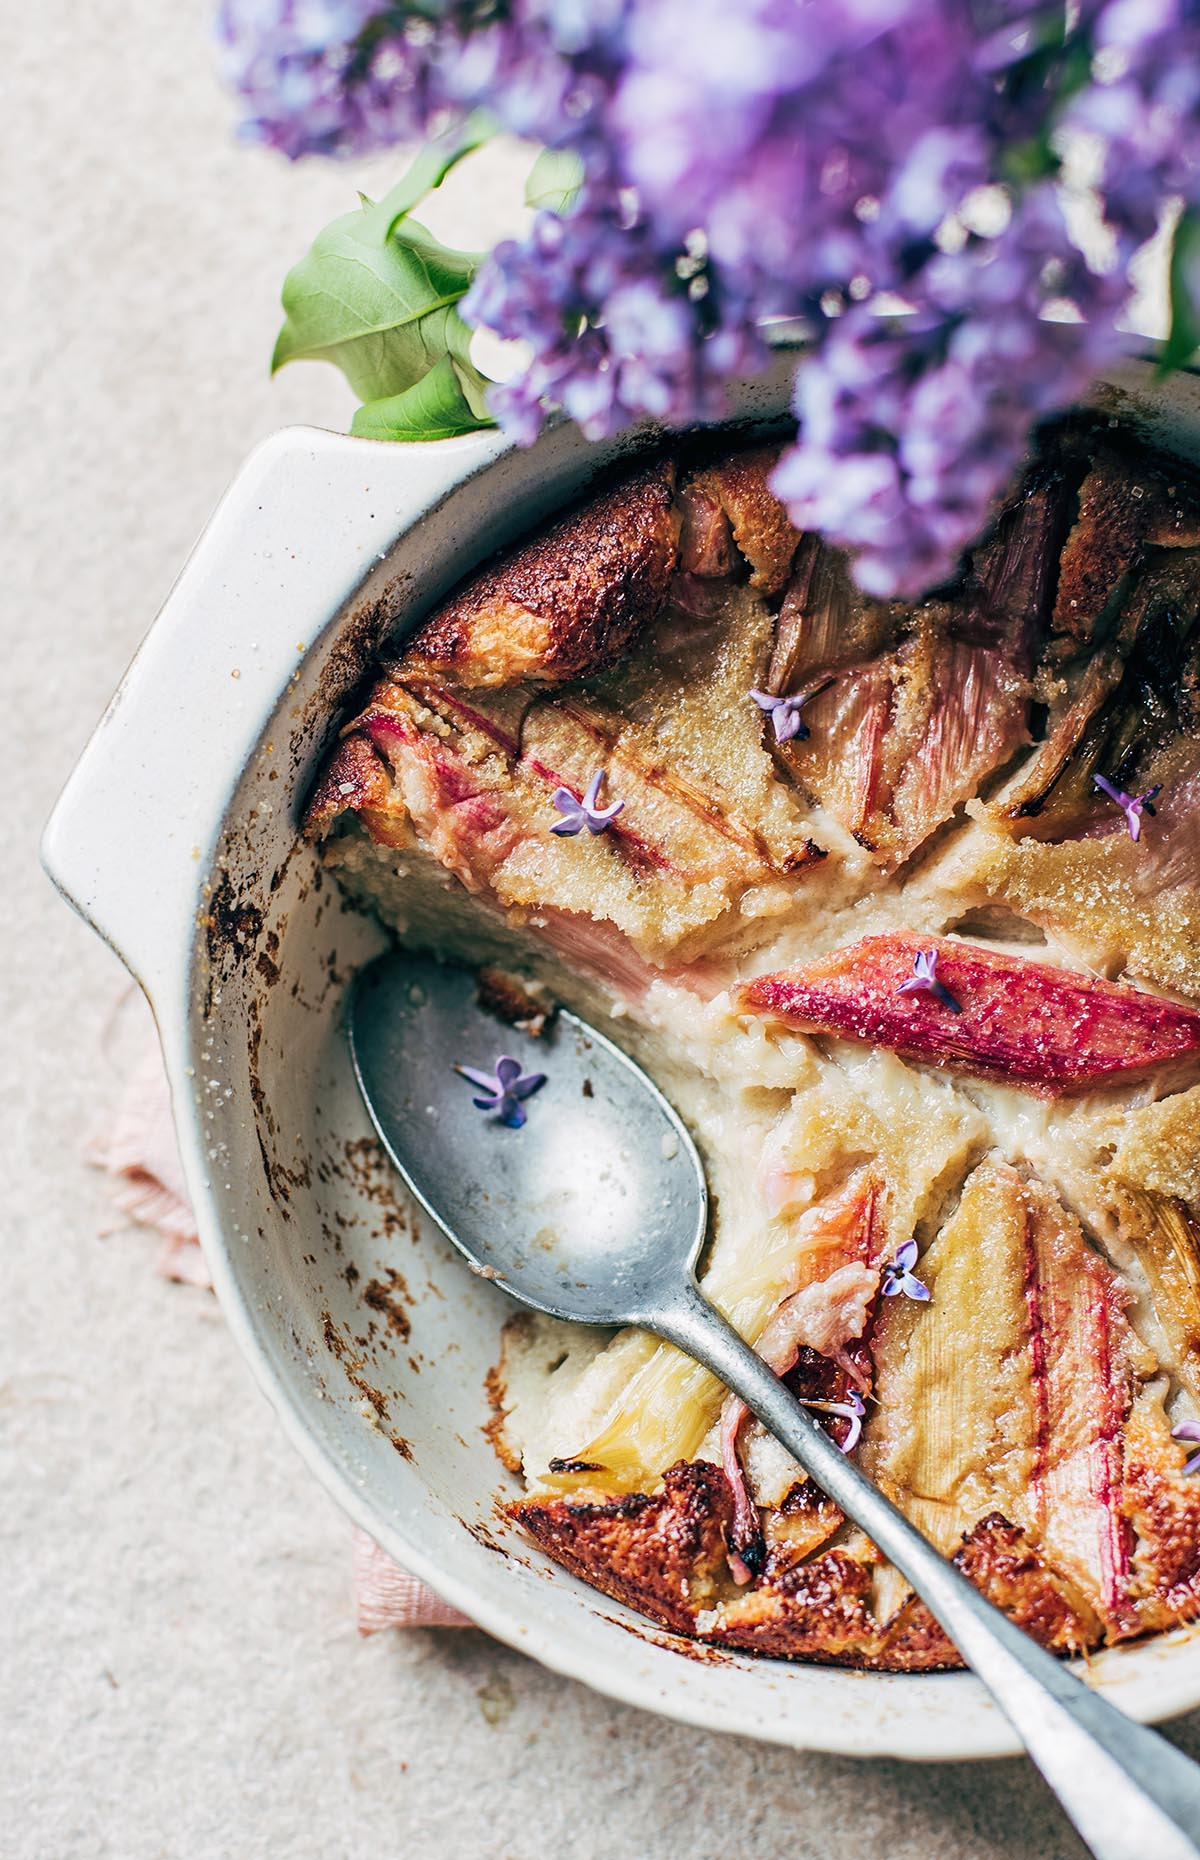 Rhubarb clafoutis with a large antique spoon.